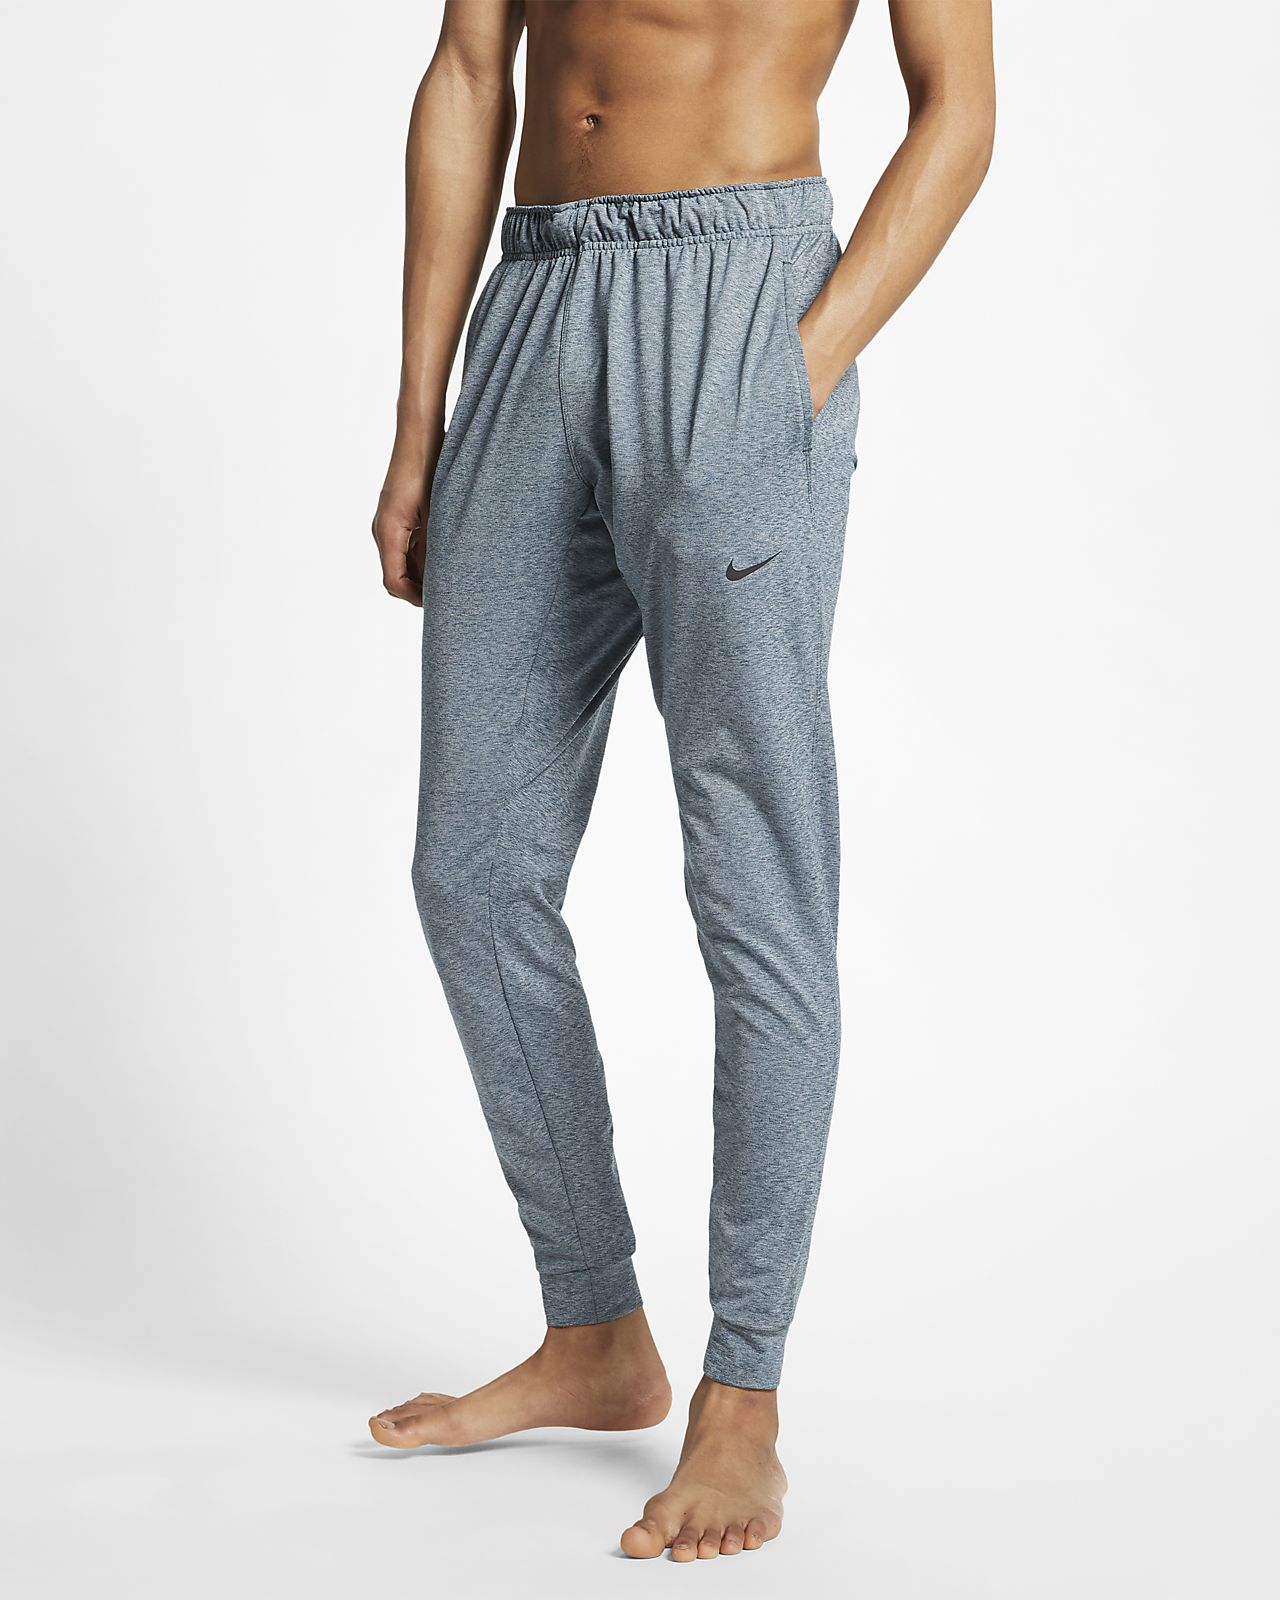 Nike Dri-FIT Men's Yoga Trousers